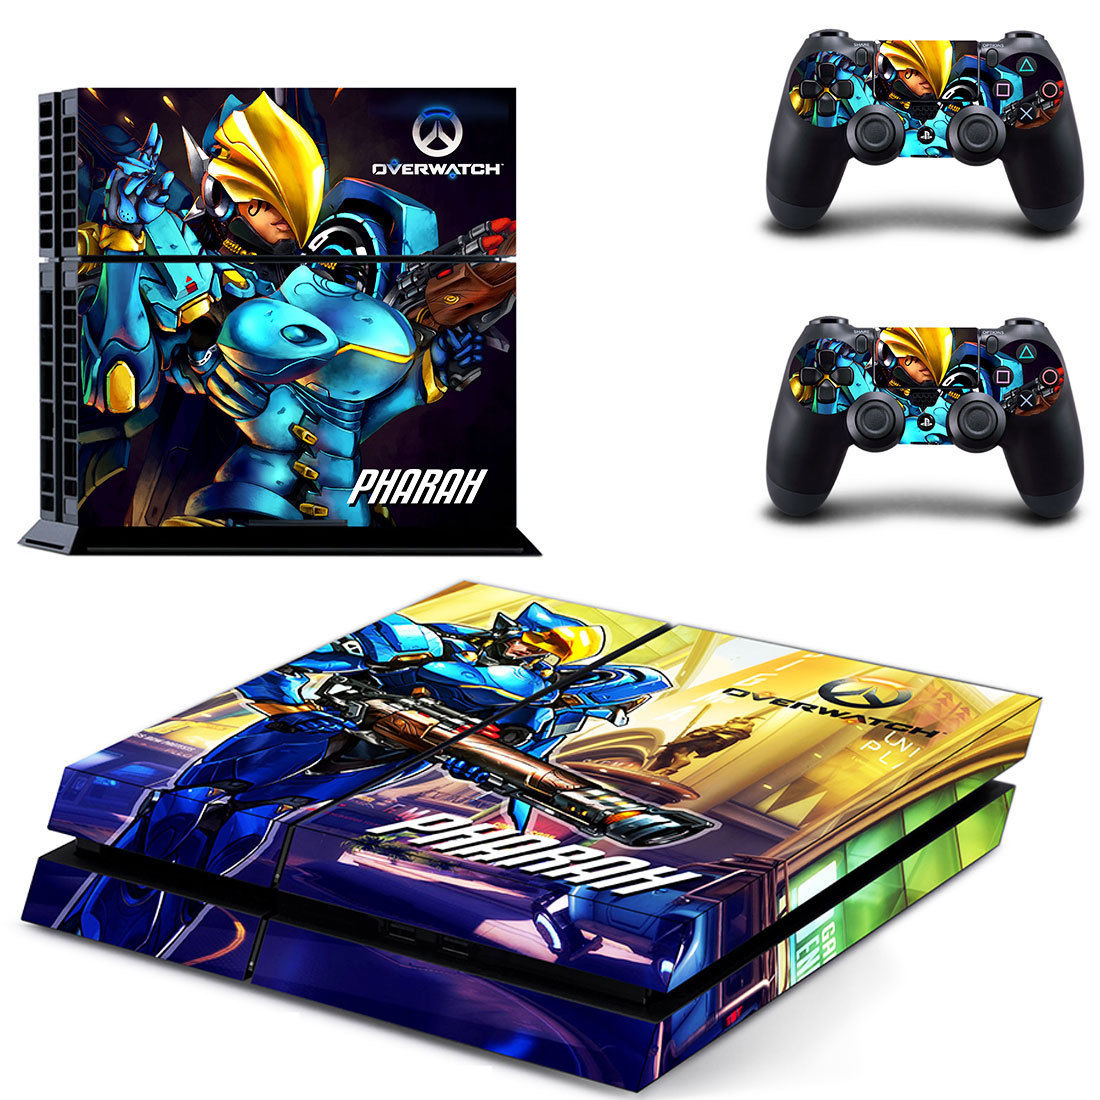 Google themes overwatch - Latest Games Themes Overwatch Pharah Sticker Cover For Sony Ps4 Playstation 4 Console 2 Controller